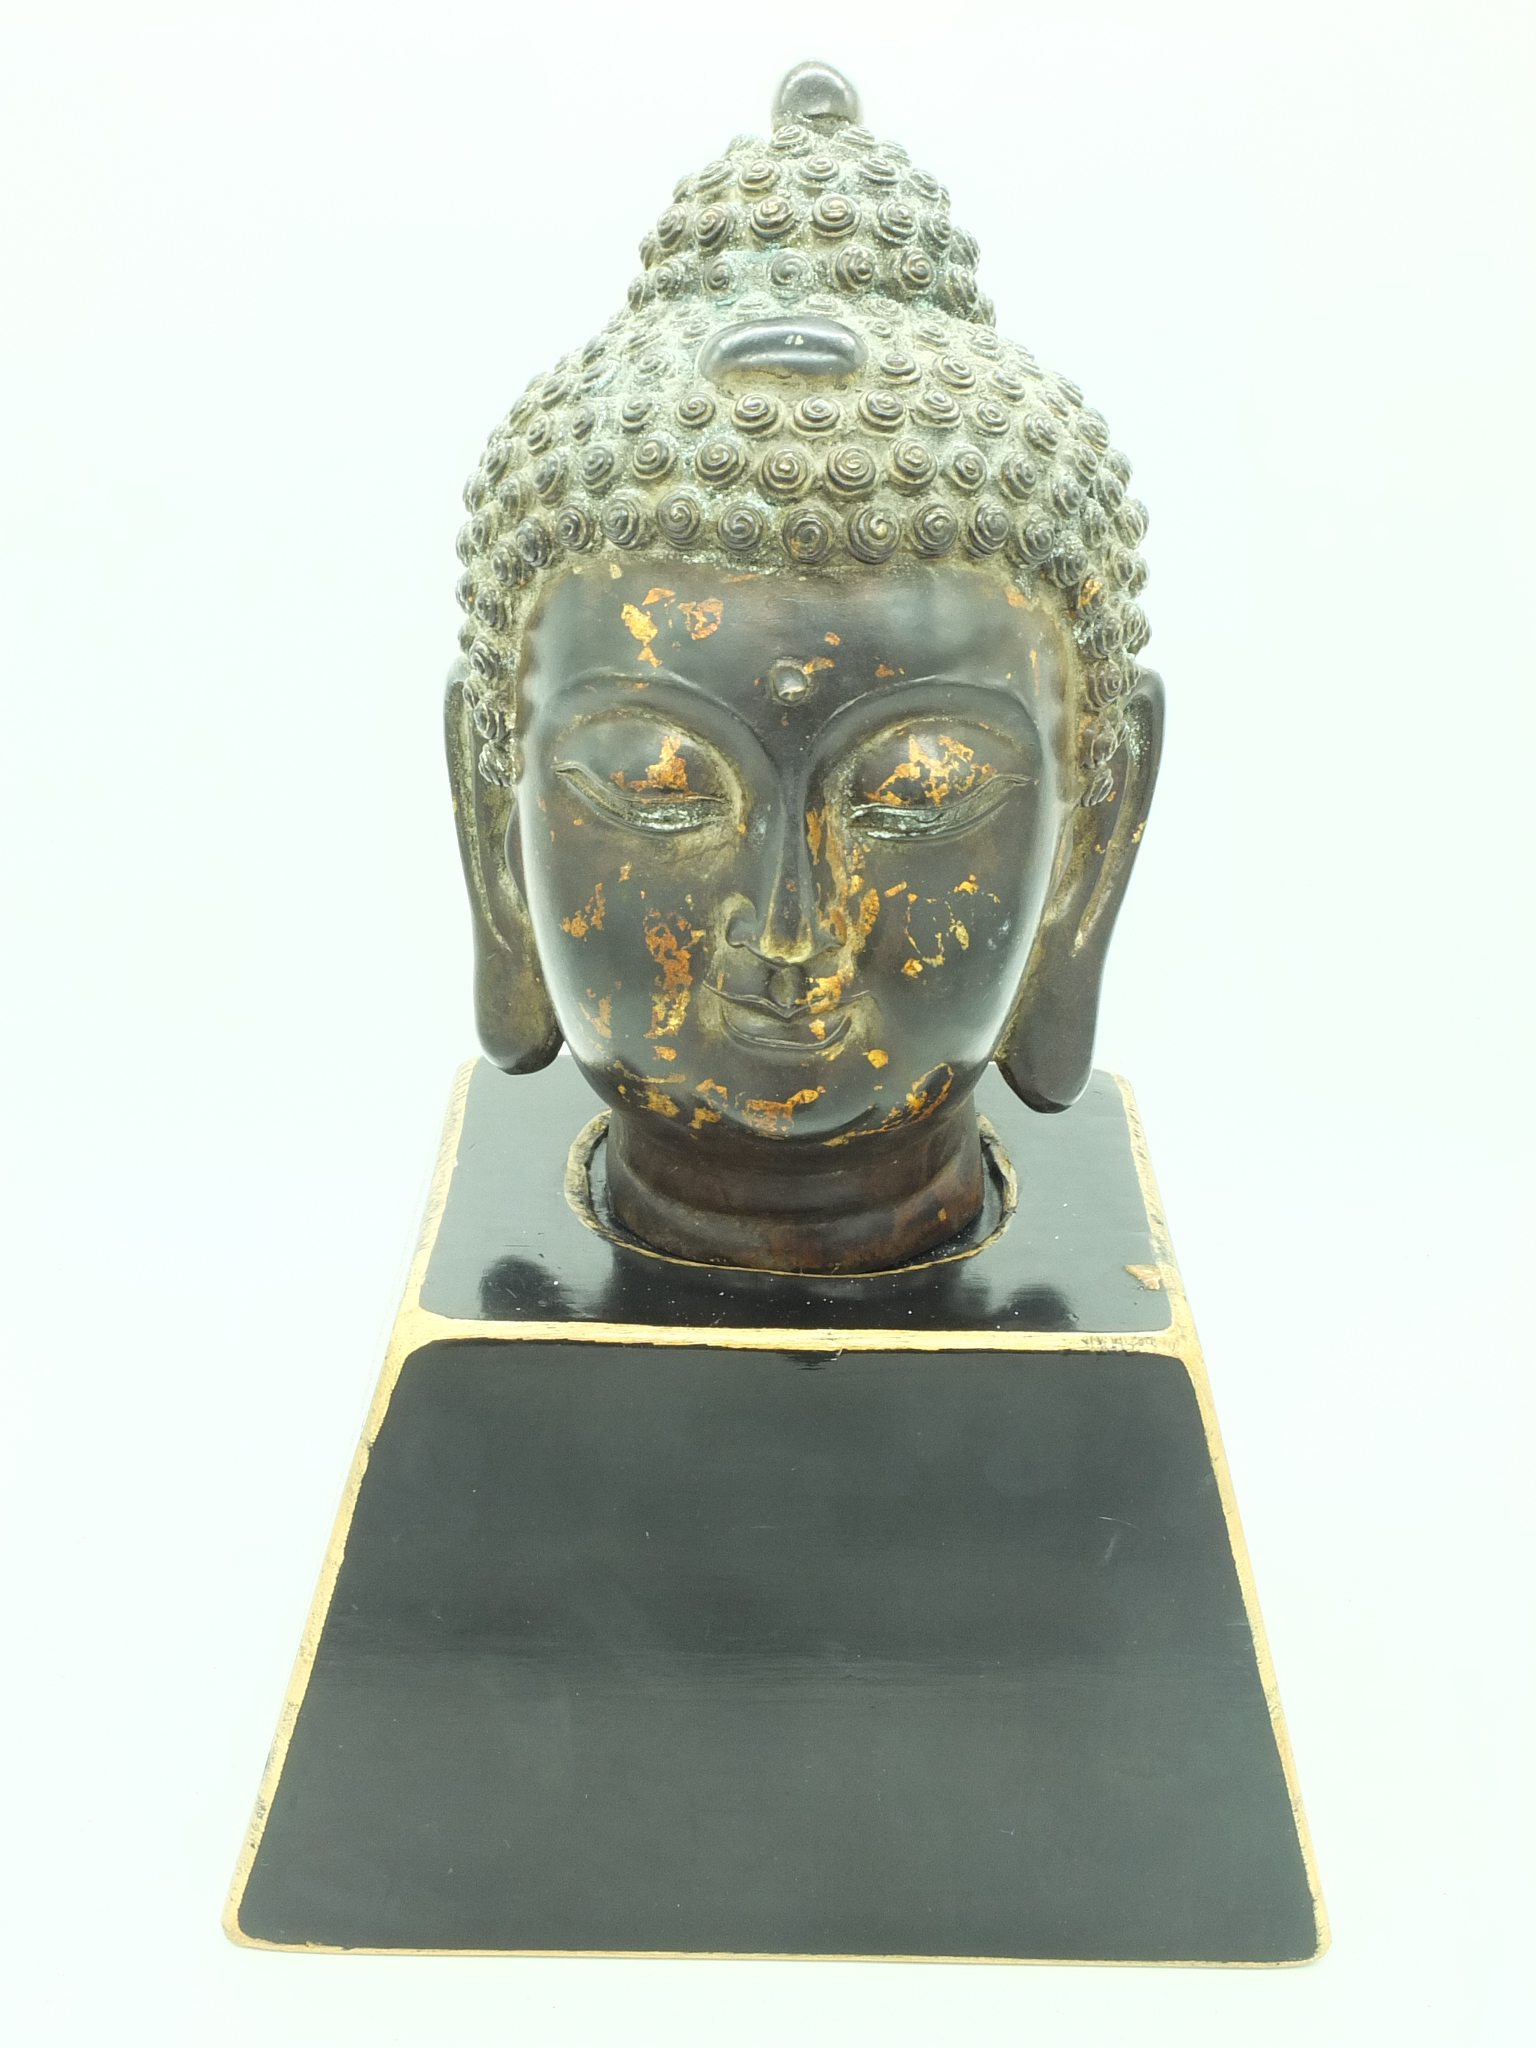 'Reproduction Cast Metal Majapahit Buddha Head with Stand'